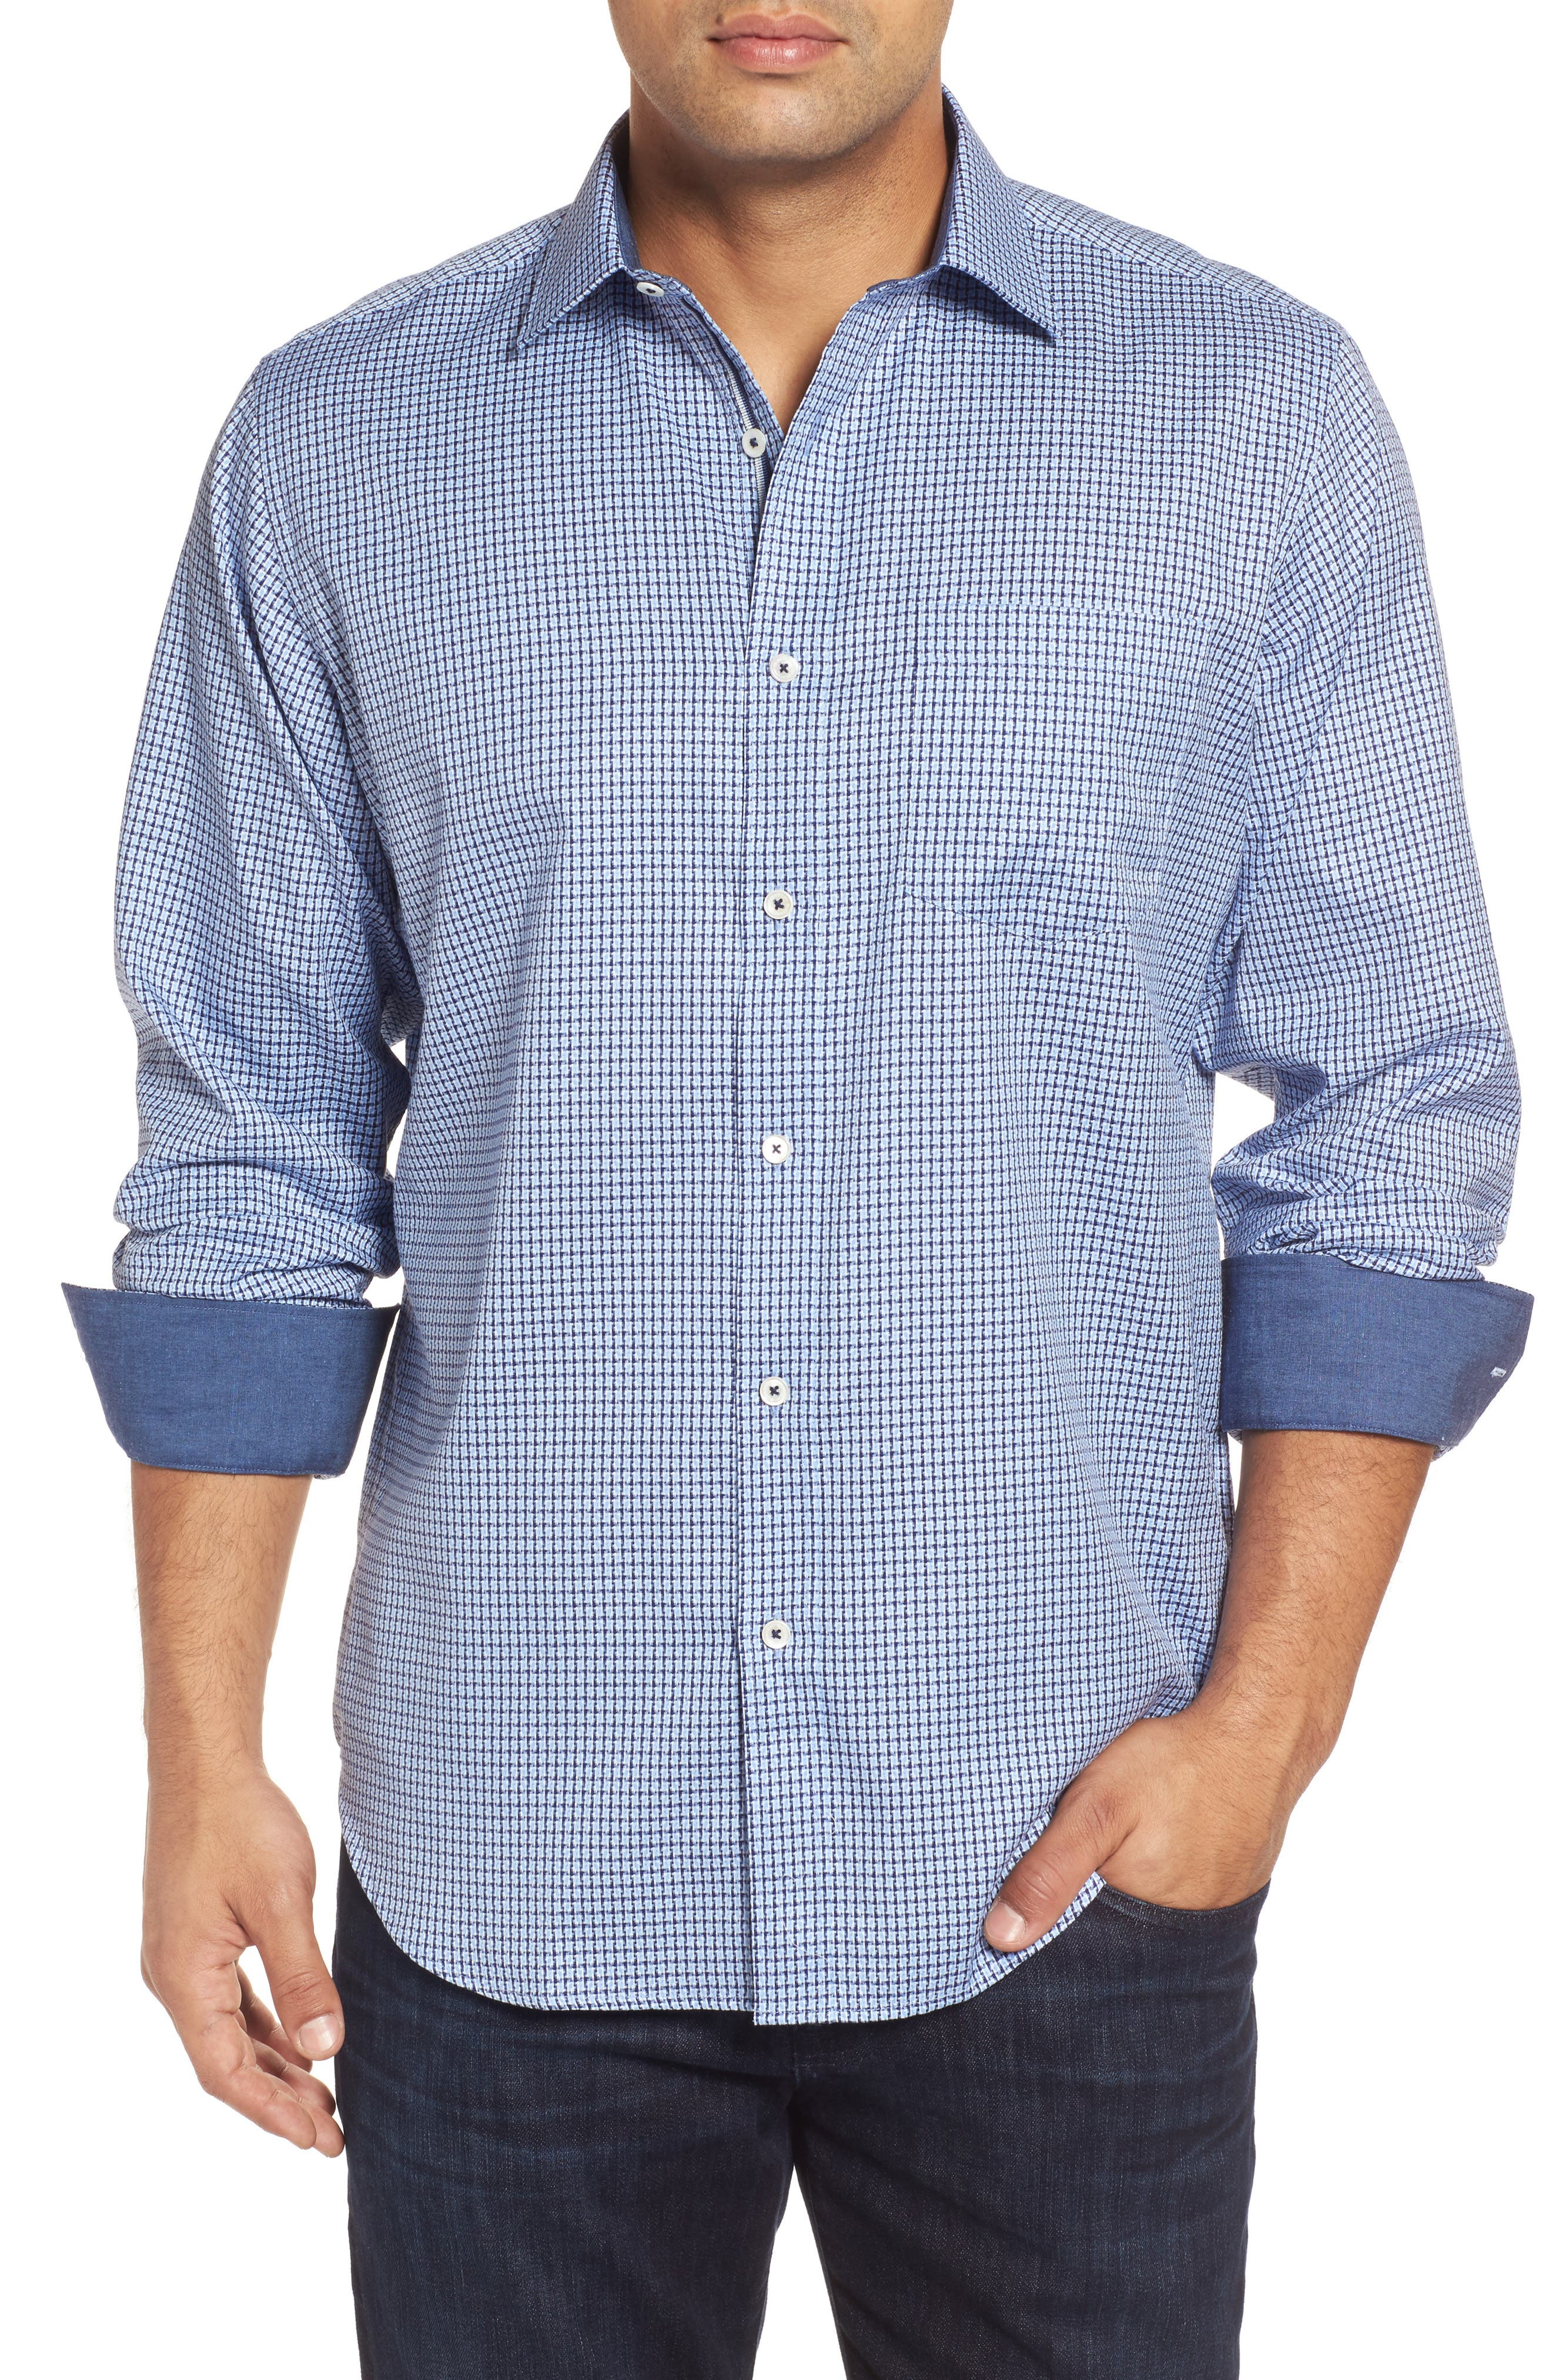 Classic Fit Micro Grid Sport Shirt,                             Main thumbnail 1, color,                             423